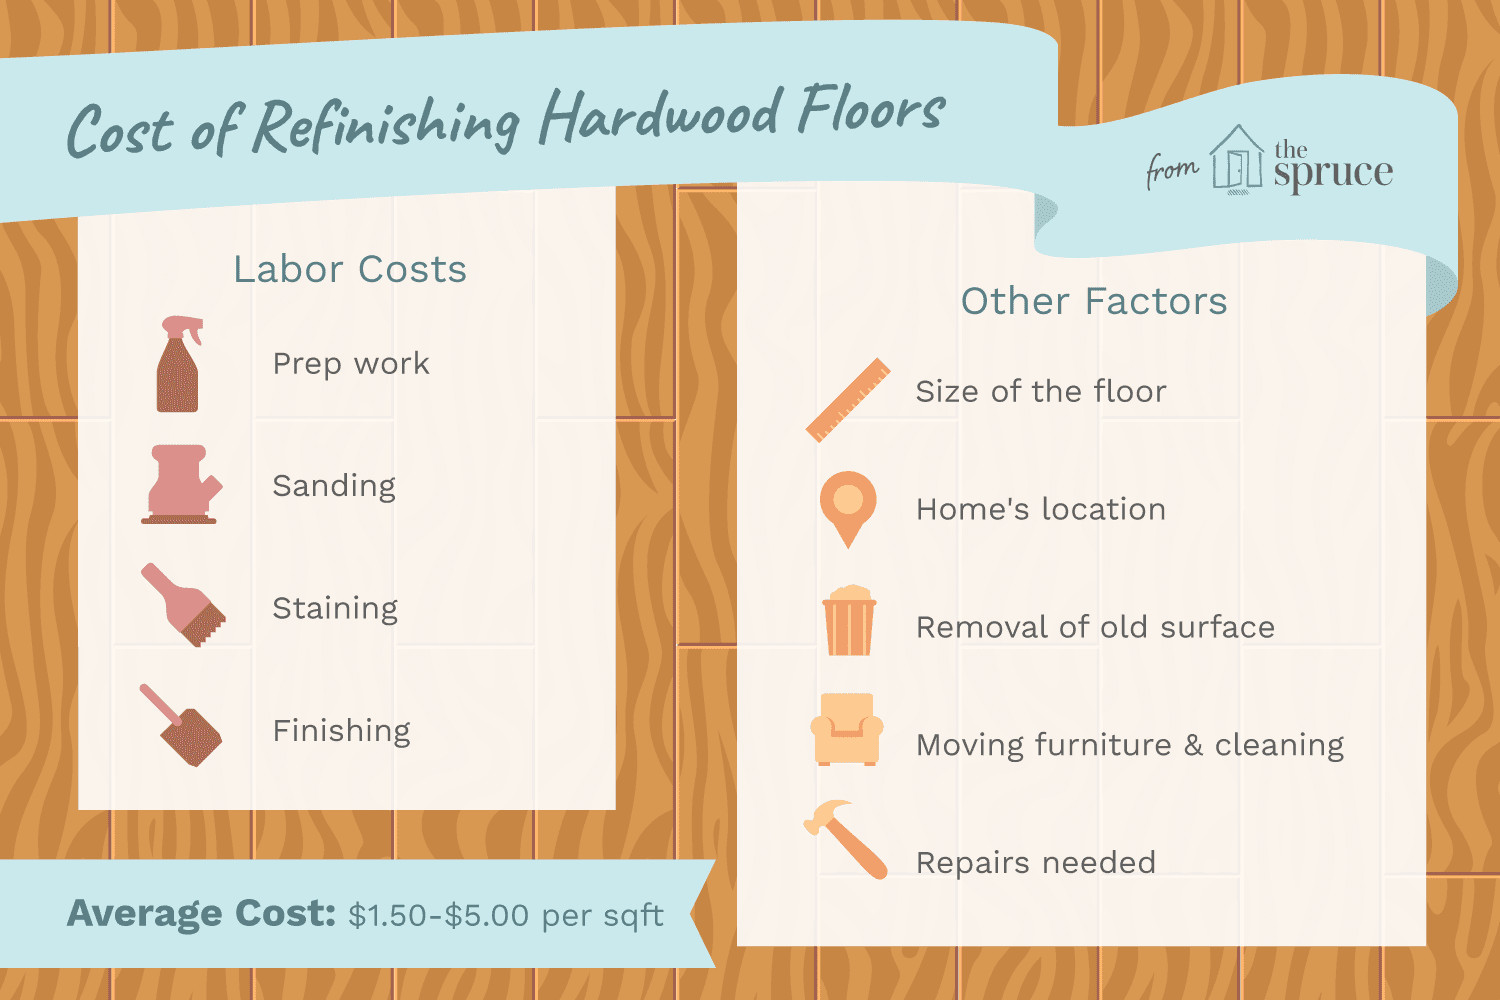 sanding hardwood floors cost of the cost to refinish hardwood floors with cost to refinish hardwood floors 1314853 final 5bb6259346e0fb0026825ce2